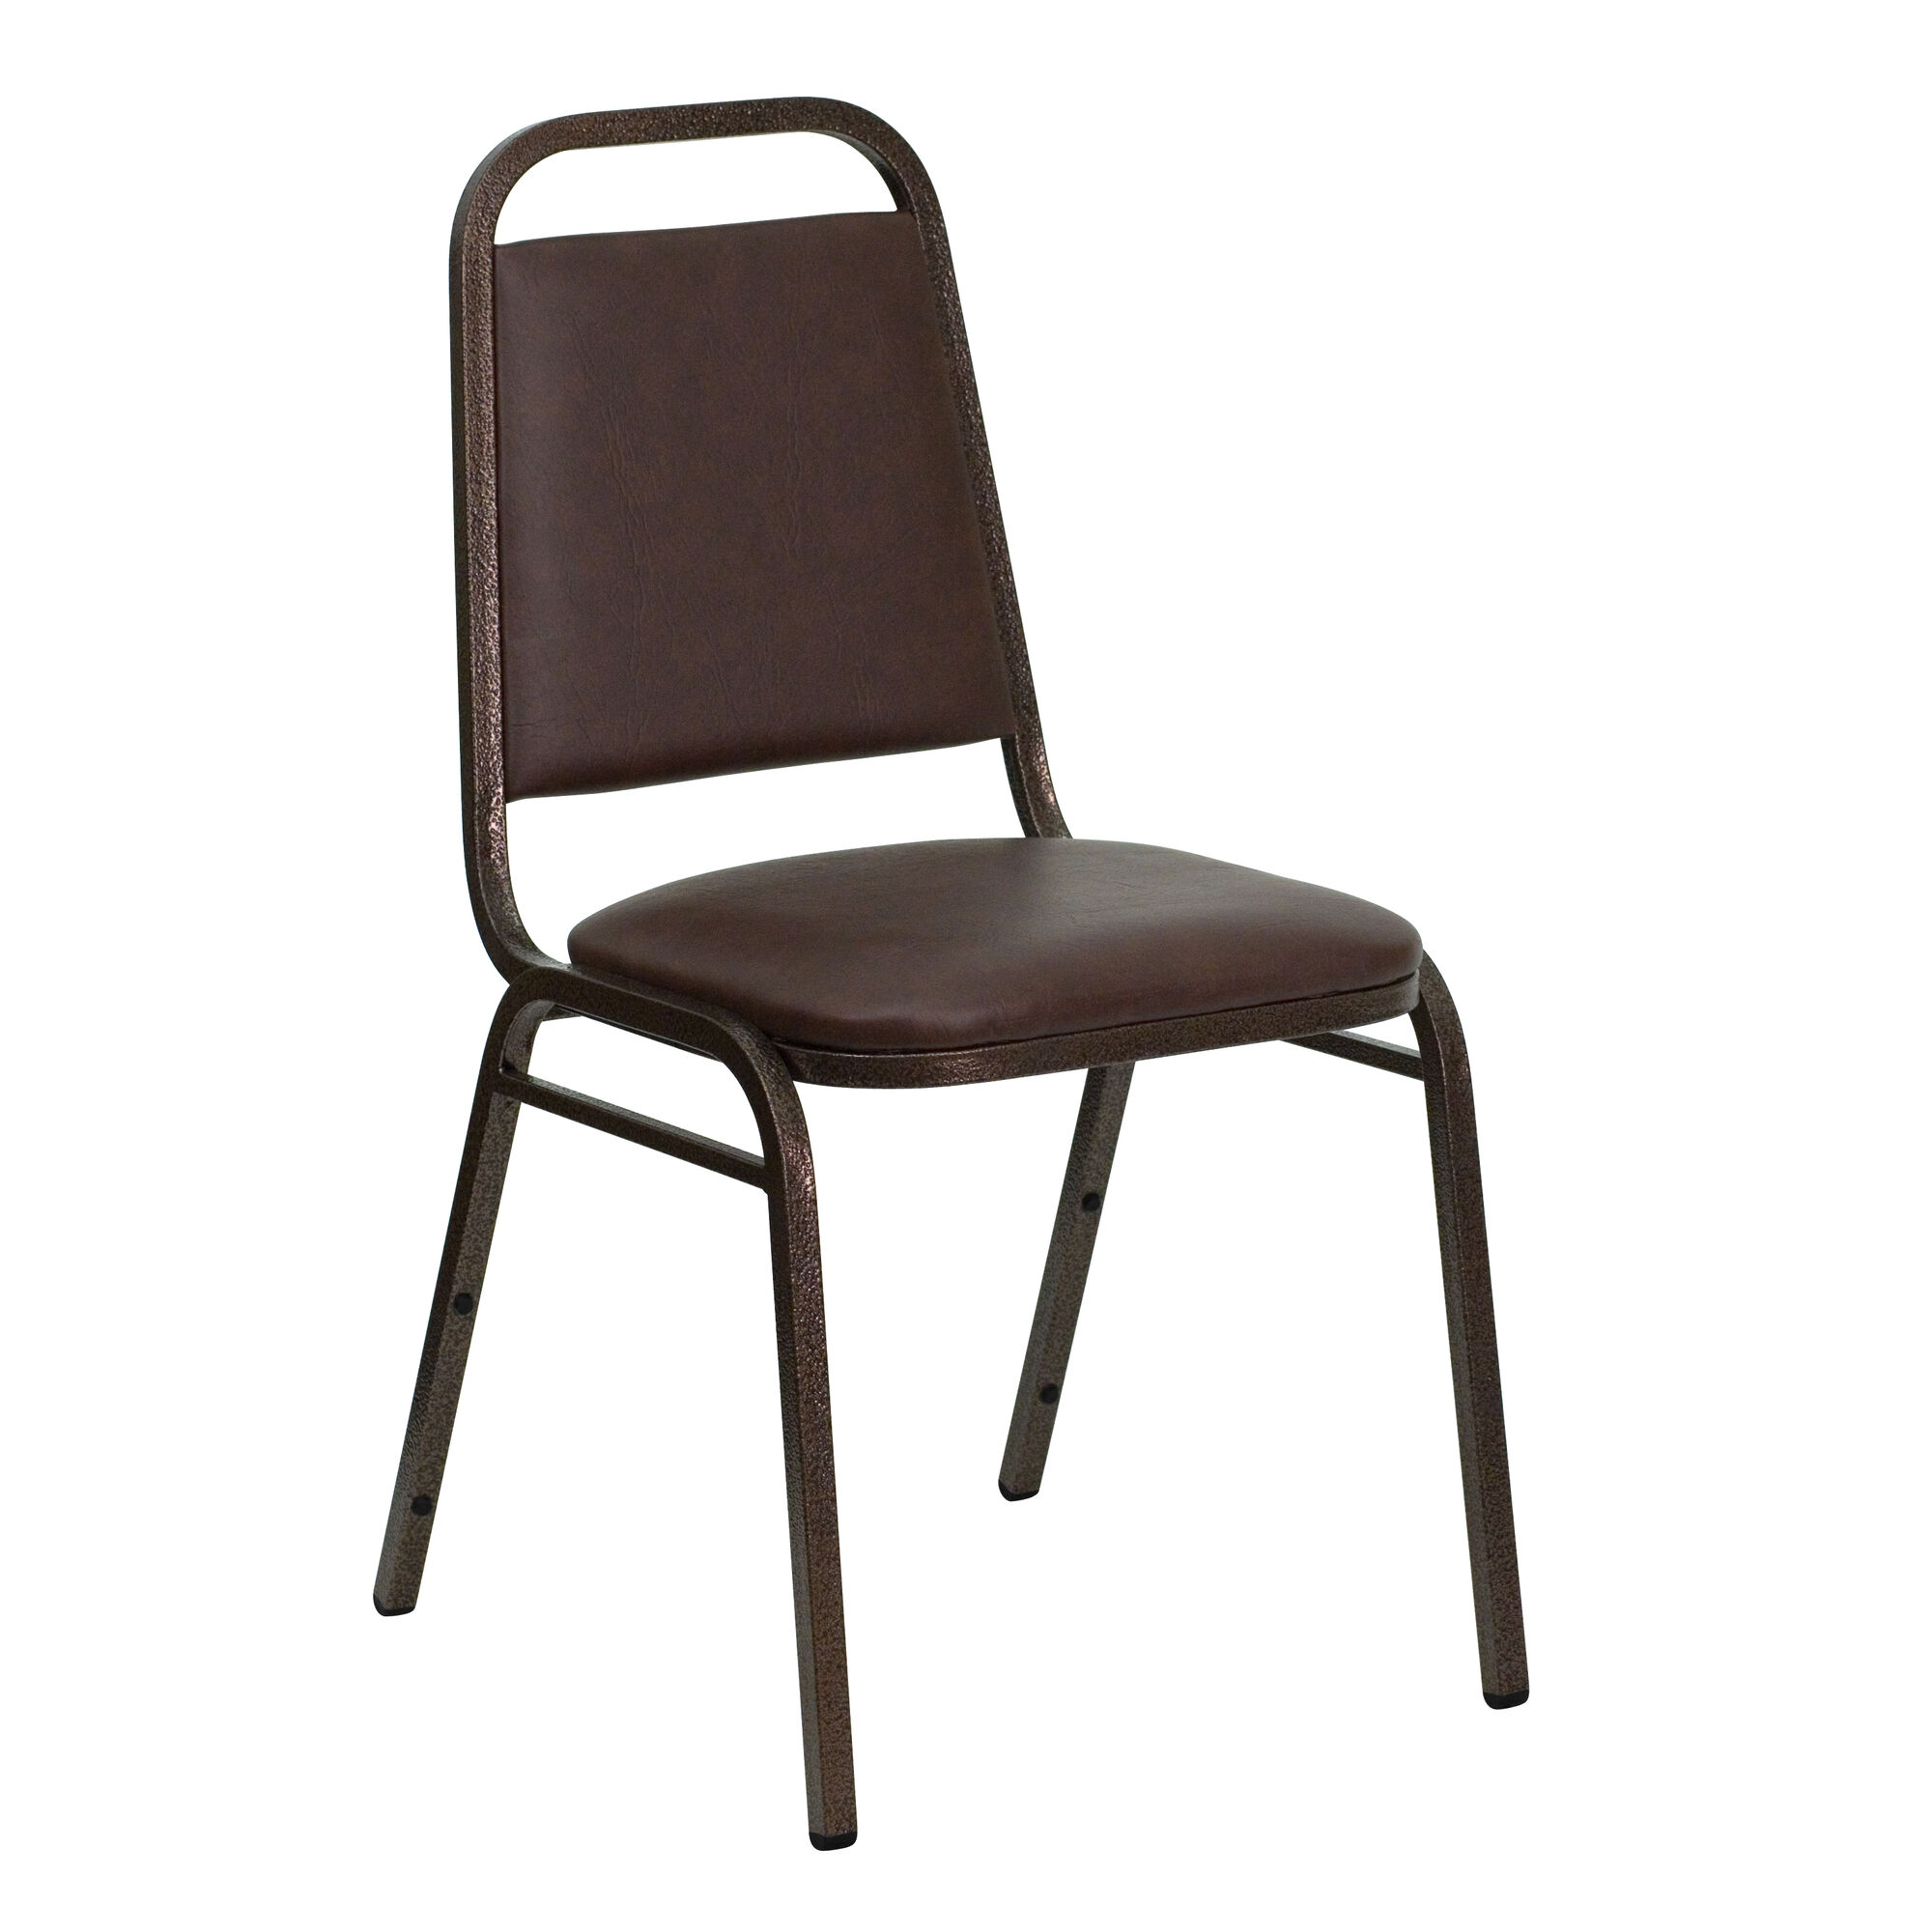 Stack Chairs at low bud prices